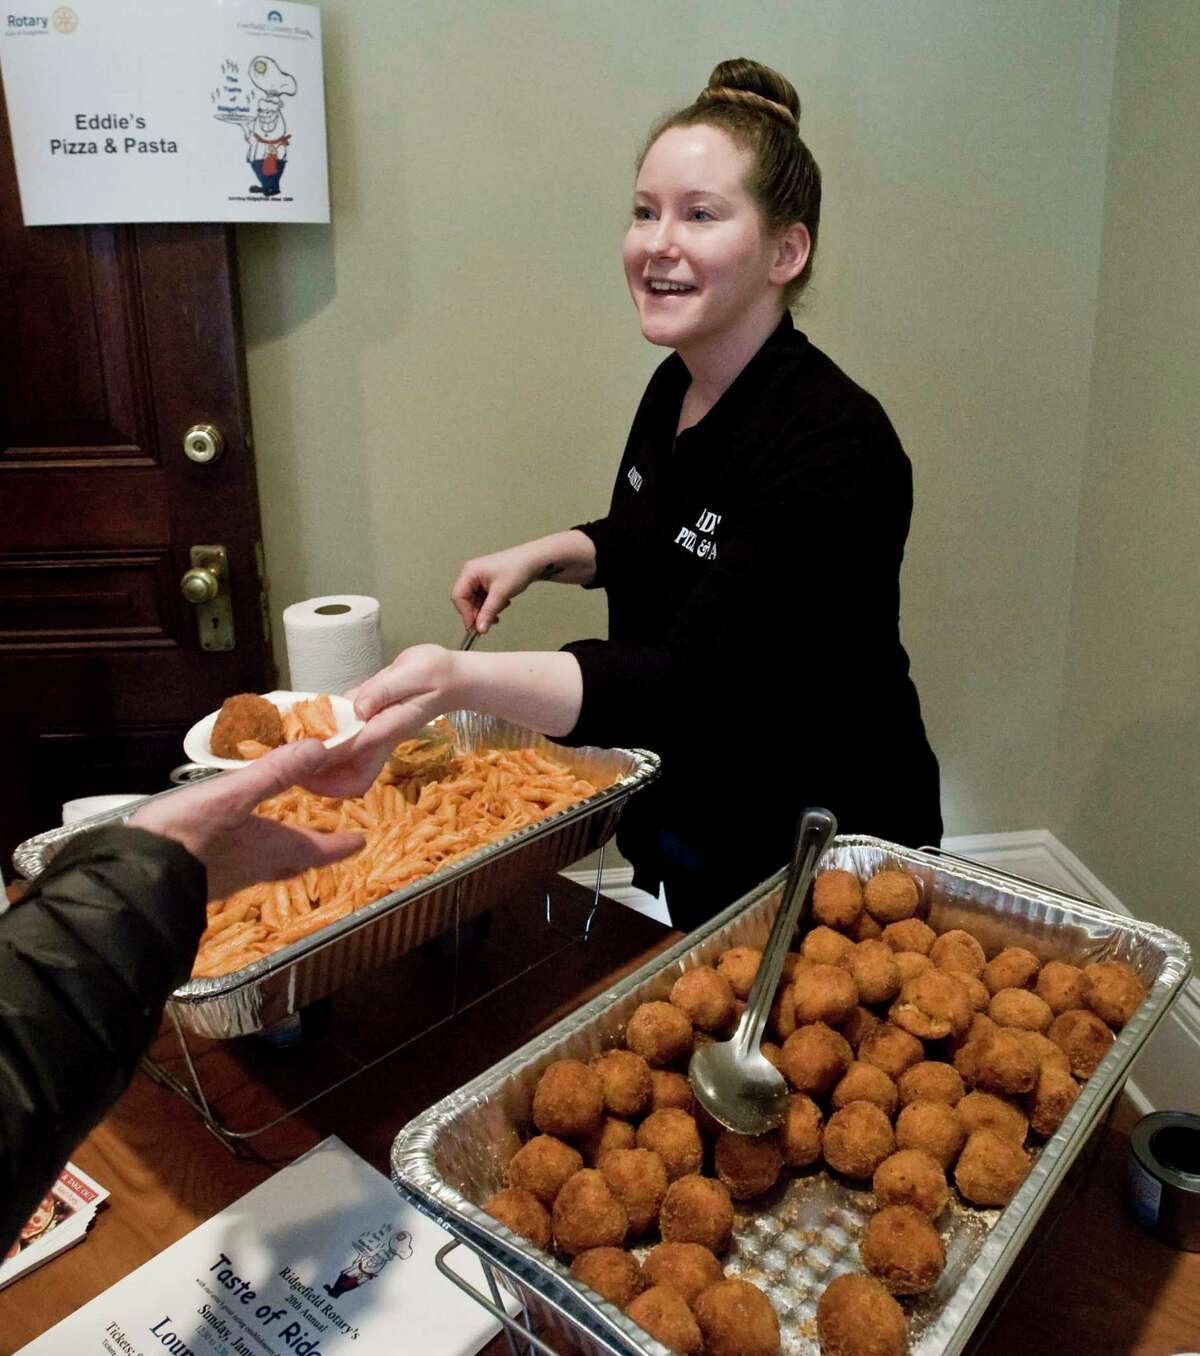 Christa Lowenstein, of Eddie's Pizza & Pasta, serves food during last year's annual Taste of Ridgefield at the Lounsbury House.